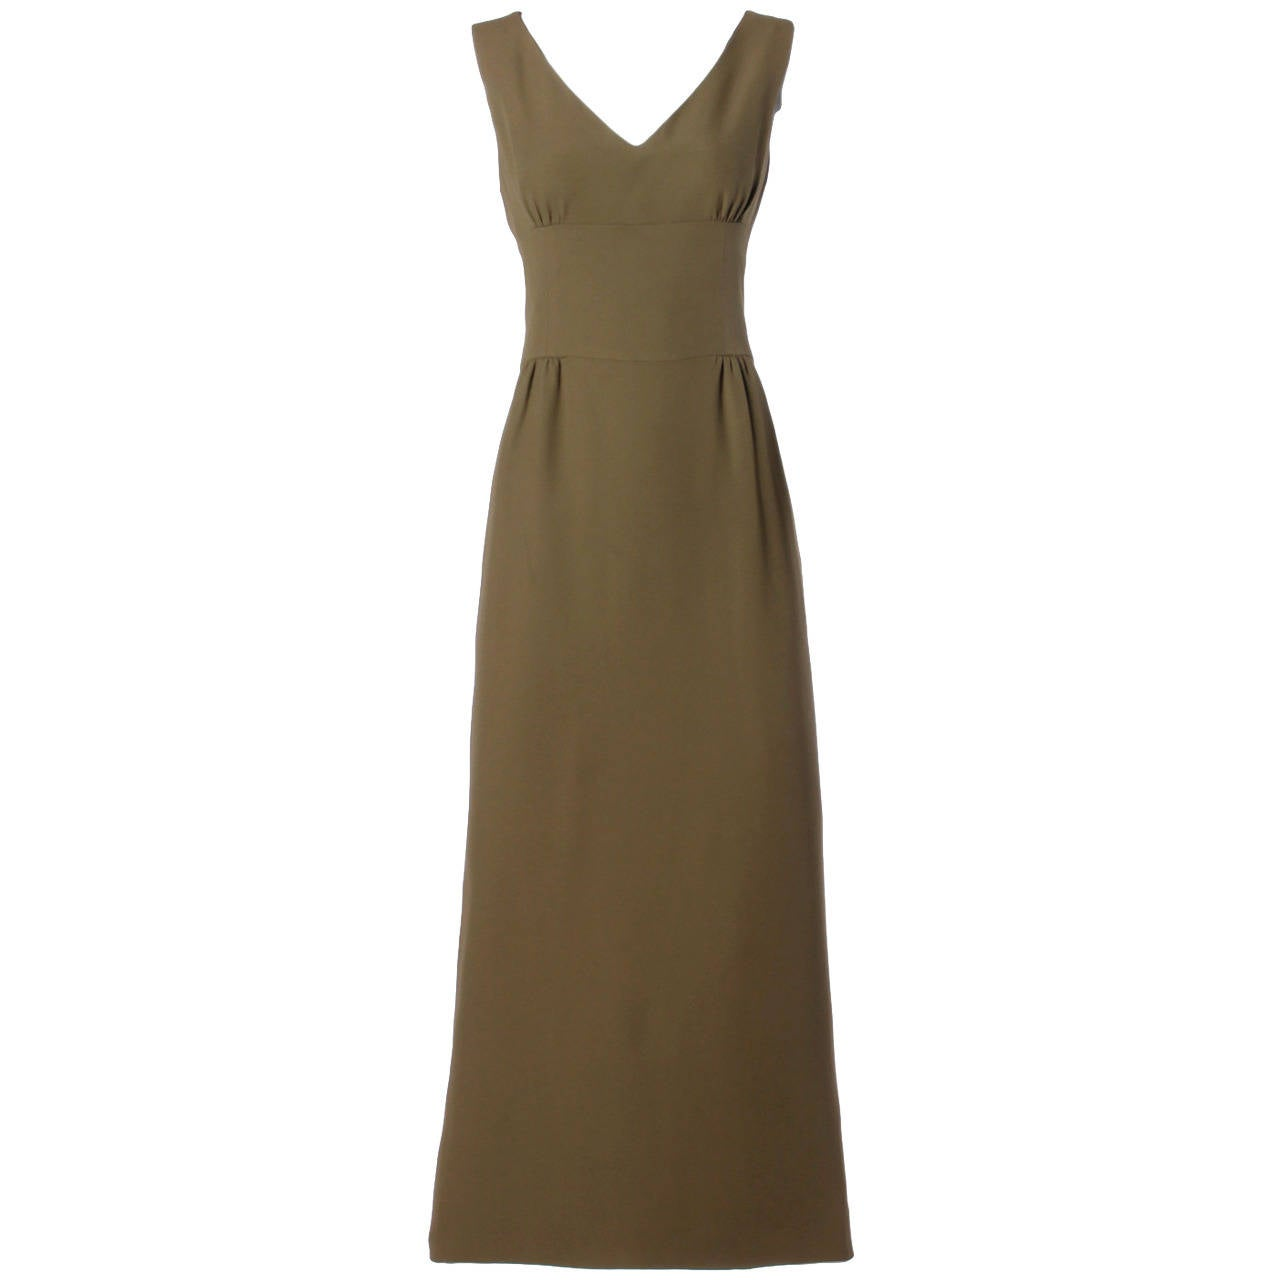 Moschino Vintage 1990s 90s Minimalist Olive Green Maxi Dress